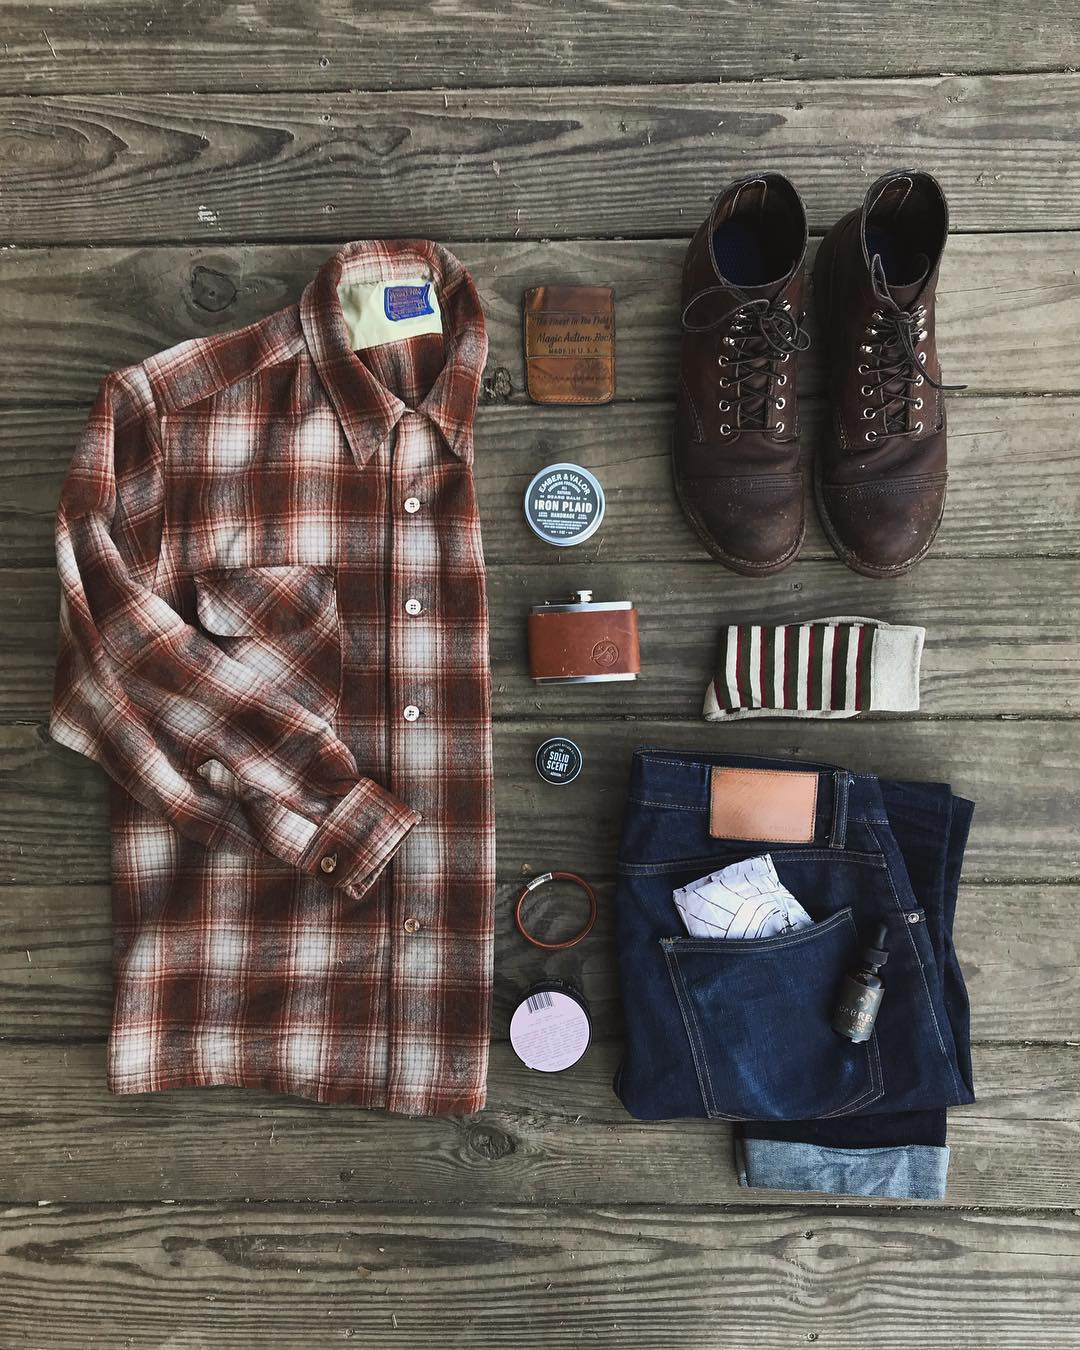 Blue Blooded, Instagrammer, lucaszfitz, Denimhunters, Pendleton, raw denim, selvedge denim, Iron Rangers, Red Wing Heritage